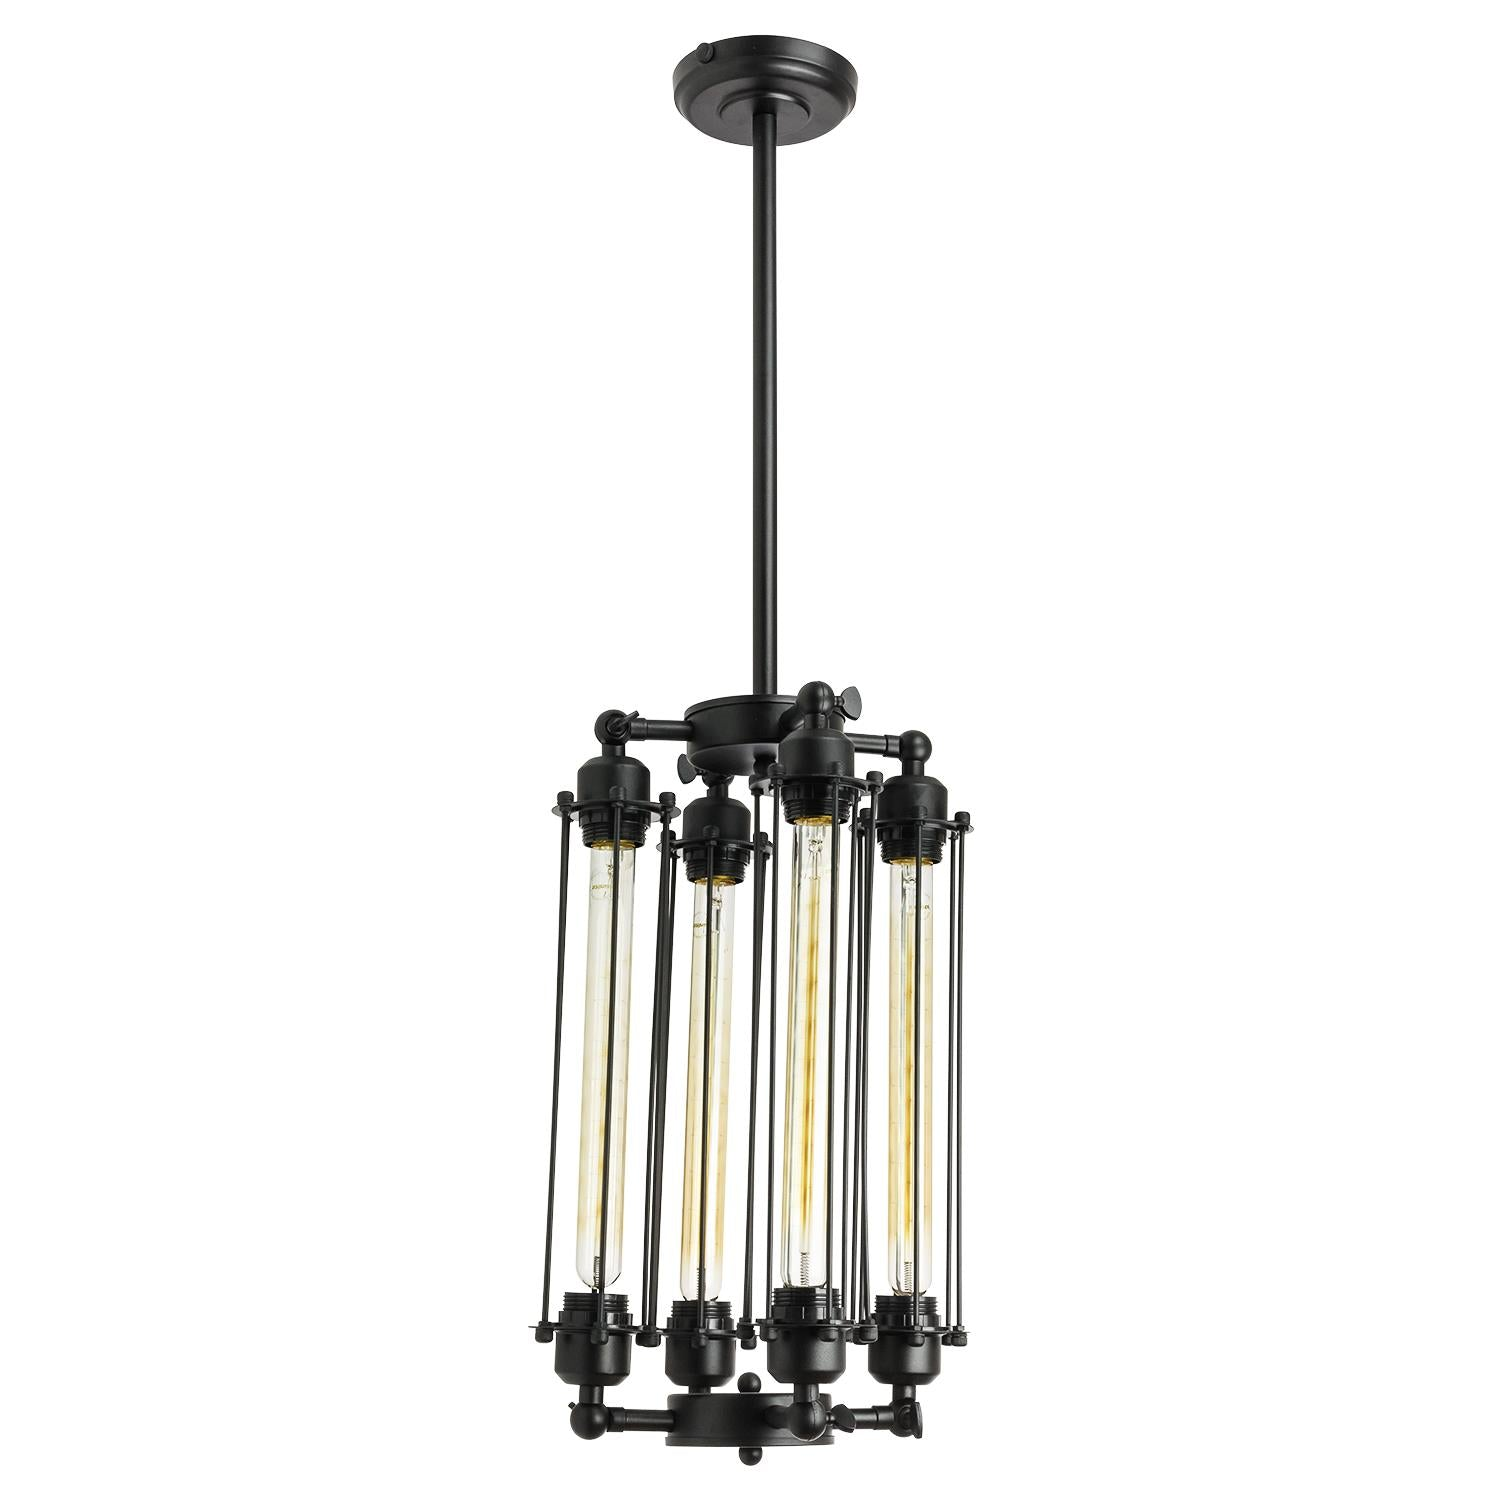 SUNLITE 07084-SU E26 4 Tube Antique Black Pendant Light Fixture